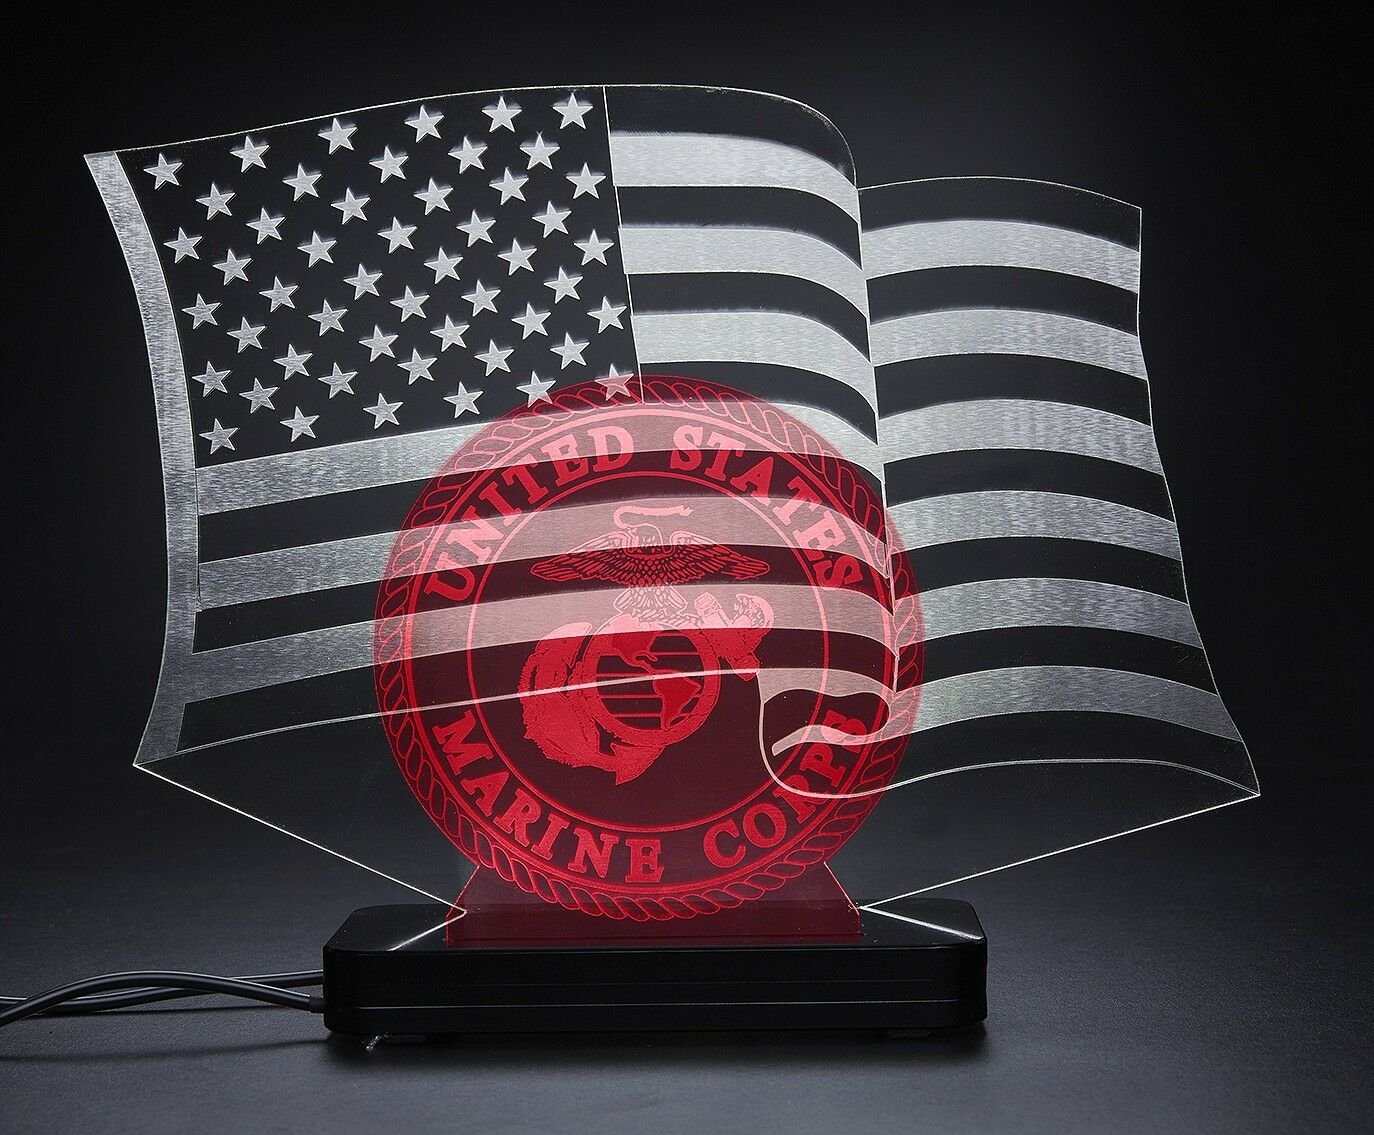 United States Marines,American Flag, LED Desktop Bar Lamp